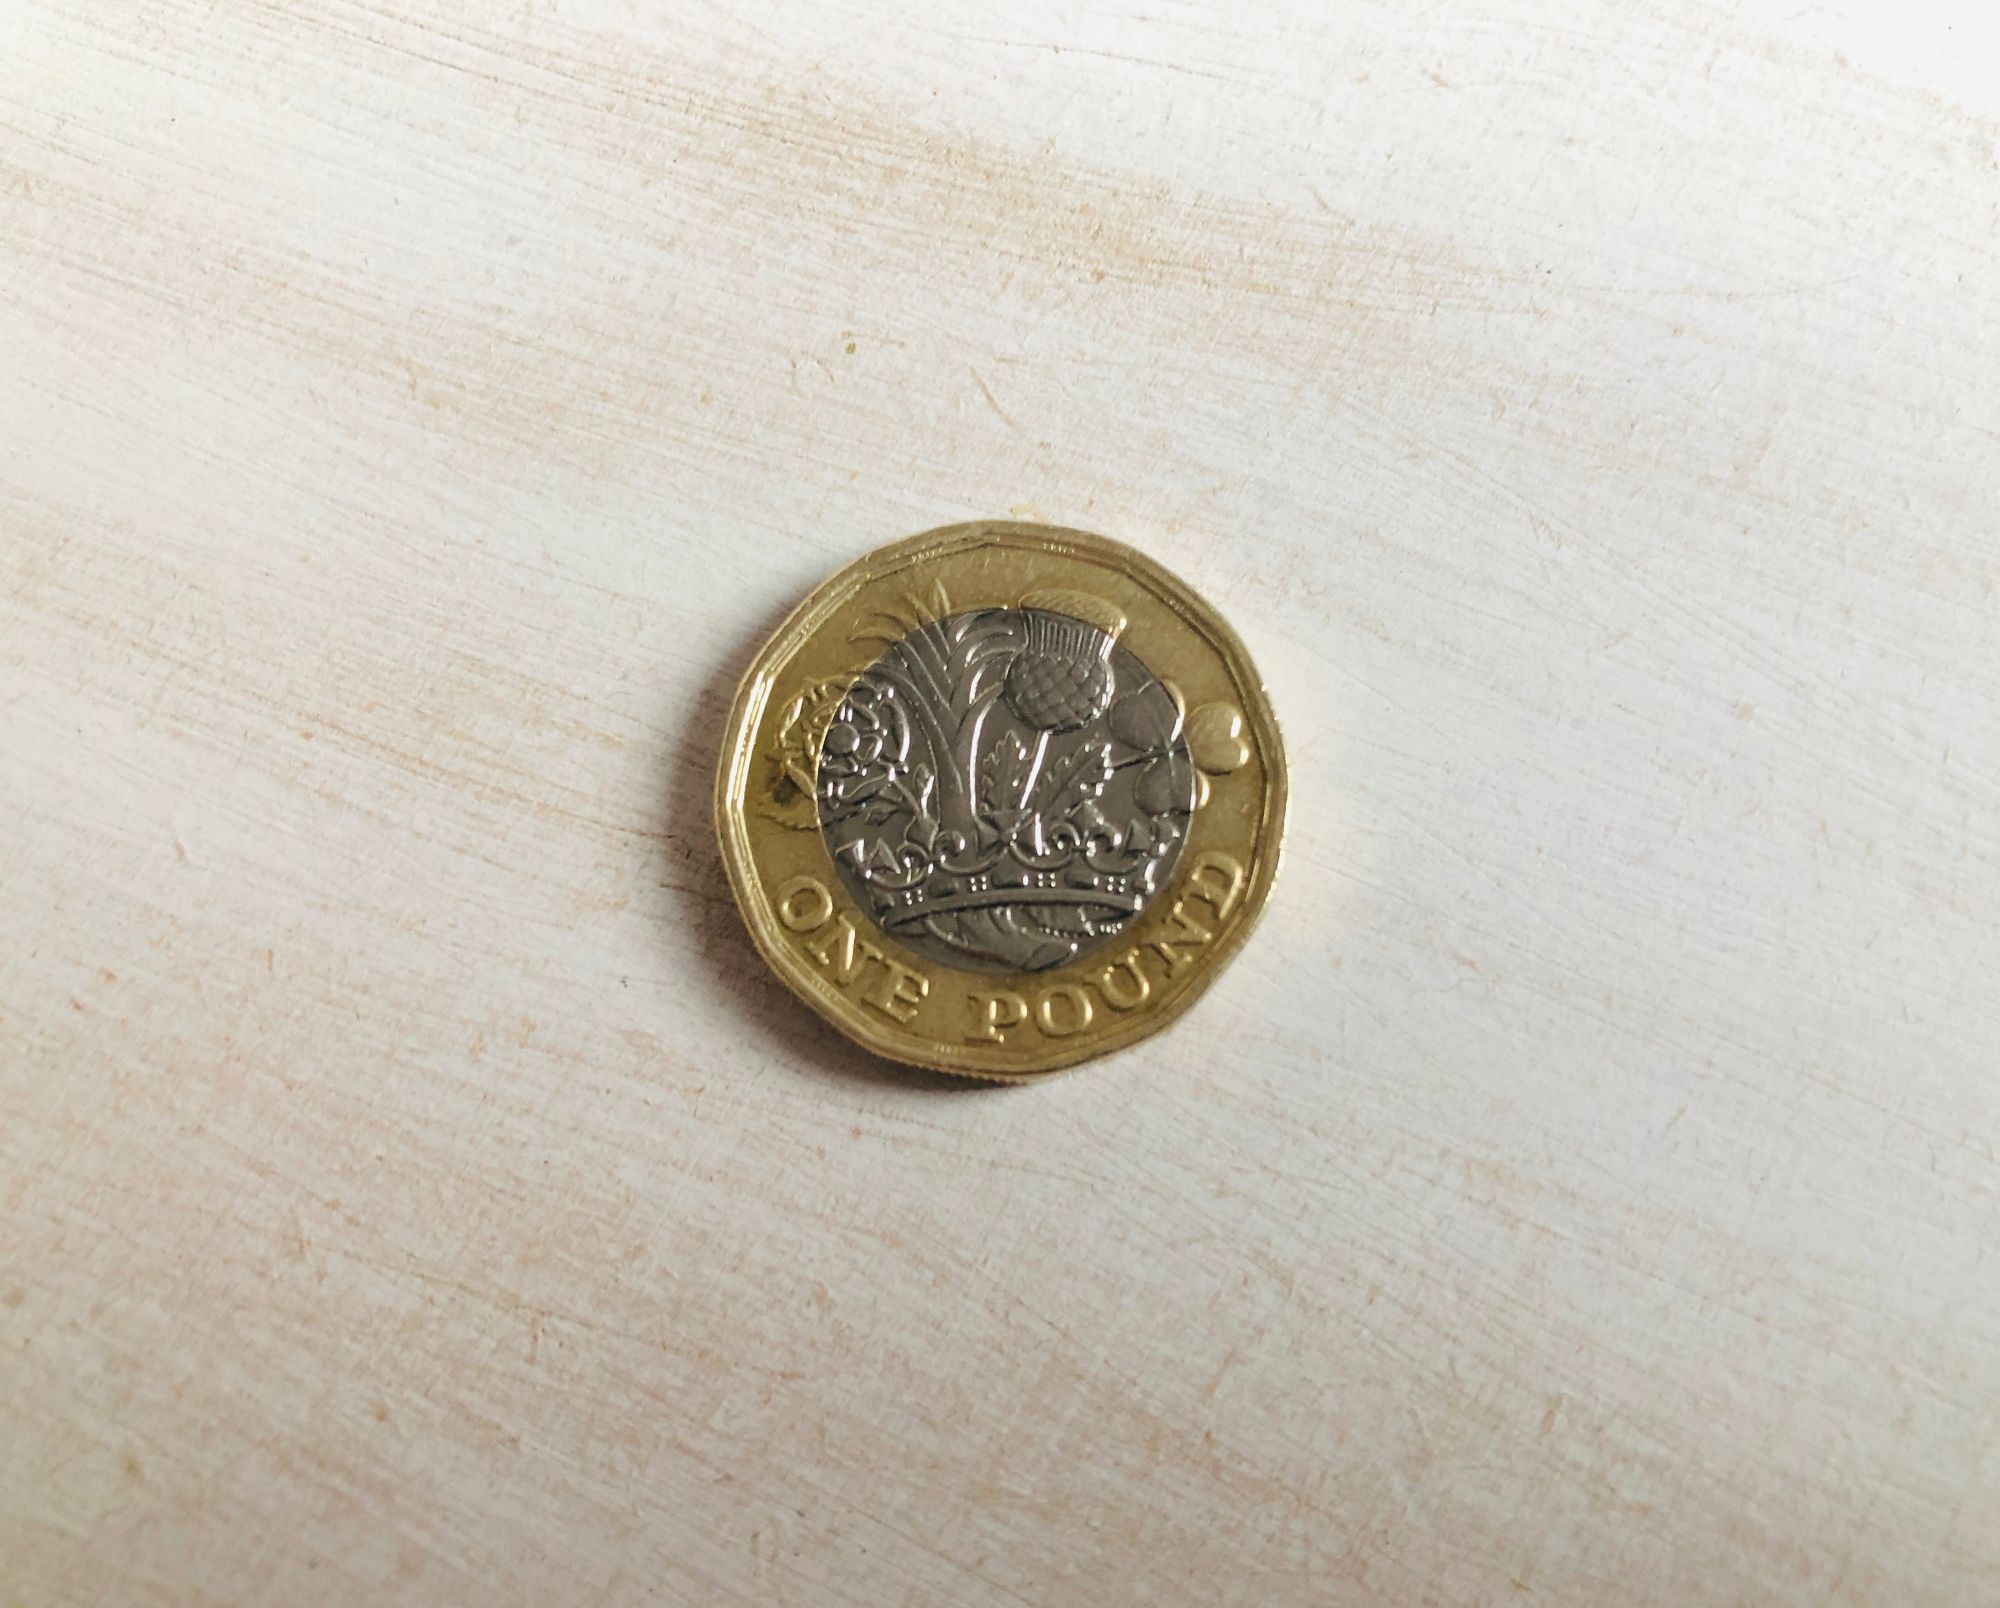 Free stock images money bloggers blog photos one pound coin GBP